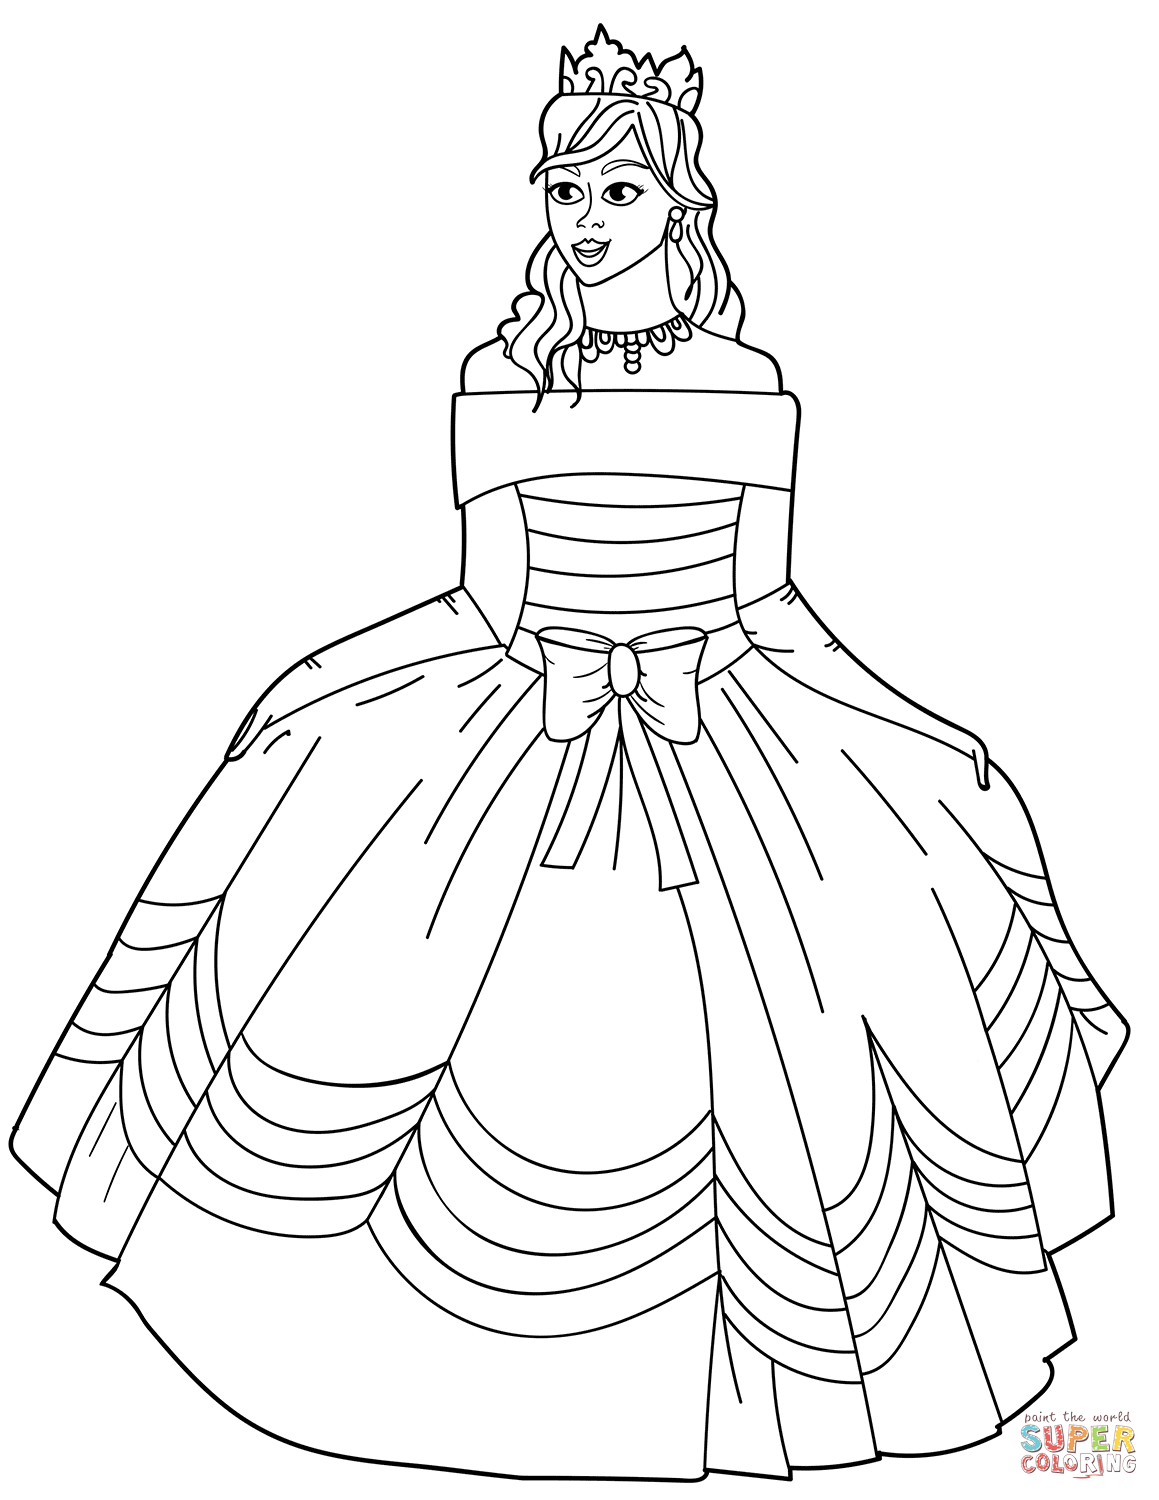 dresses coloring pages printable formal dress coloring page mama likes this pages coloring dresses